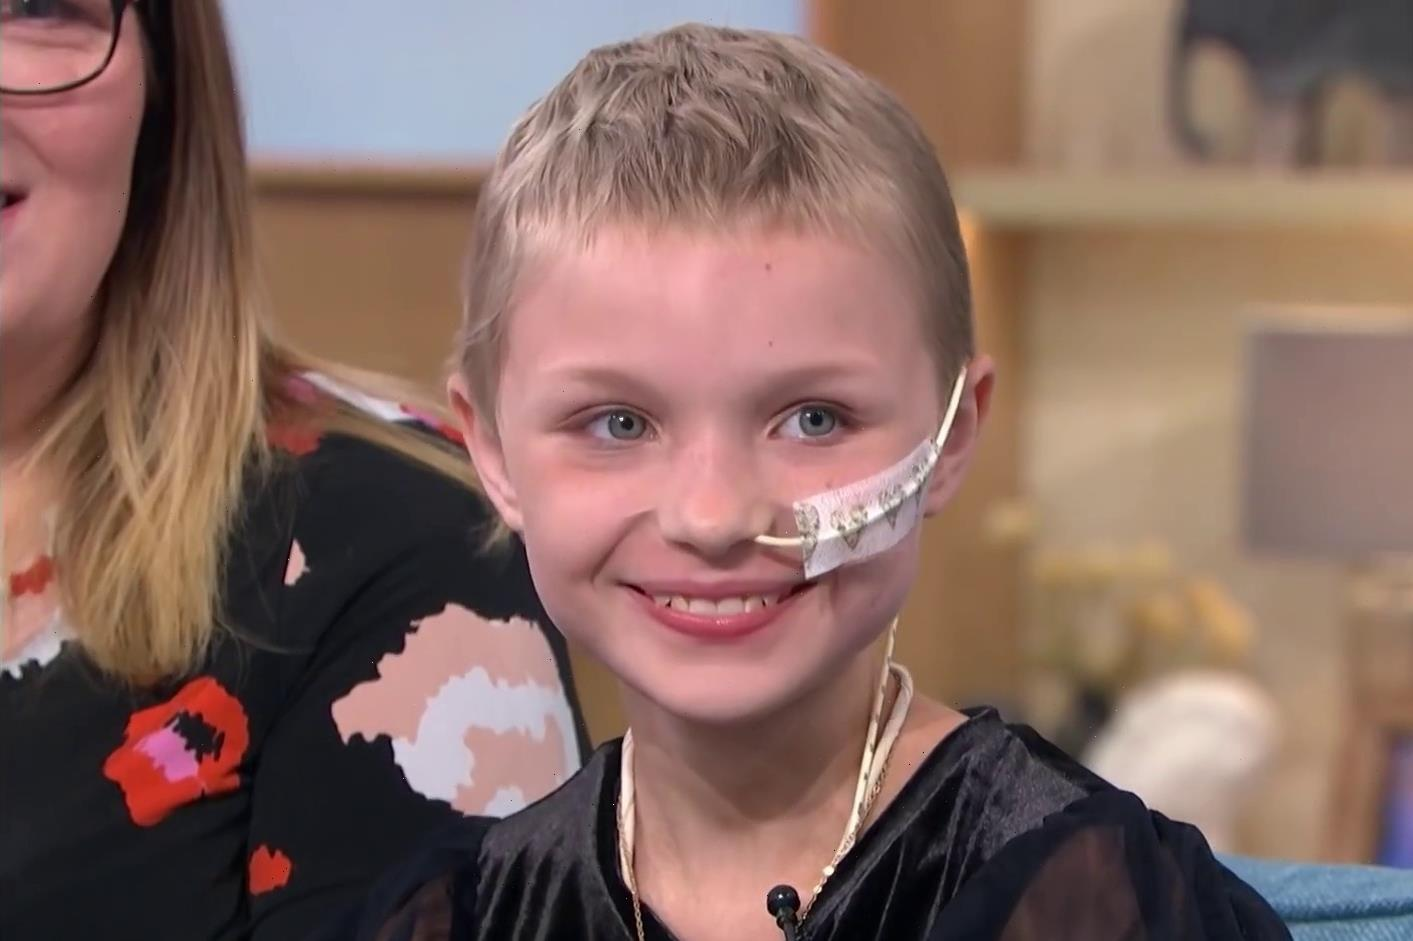 This Morning fan Sophie Fairall, 10, dies after visiting the studio and meeting Eamonn & Ruth as 'bucket list' wish